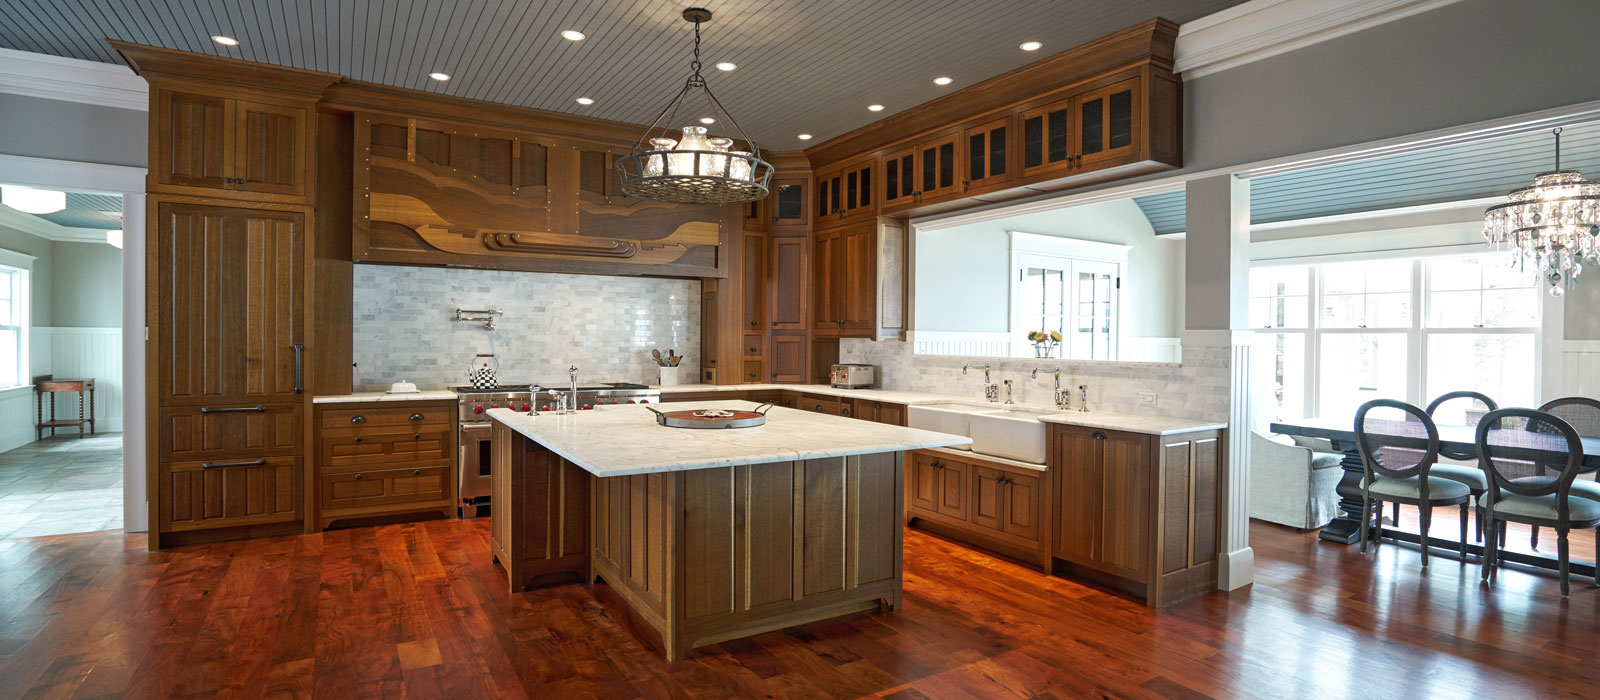 Greene and Greene style kitchen